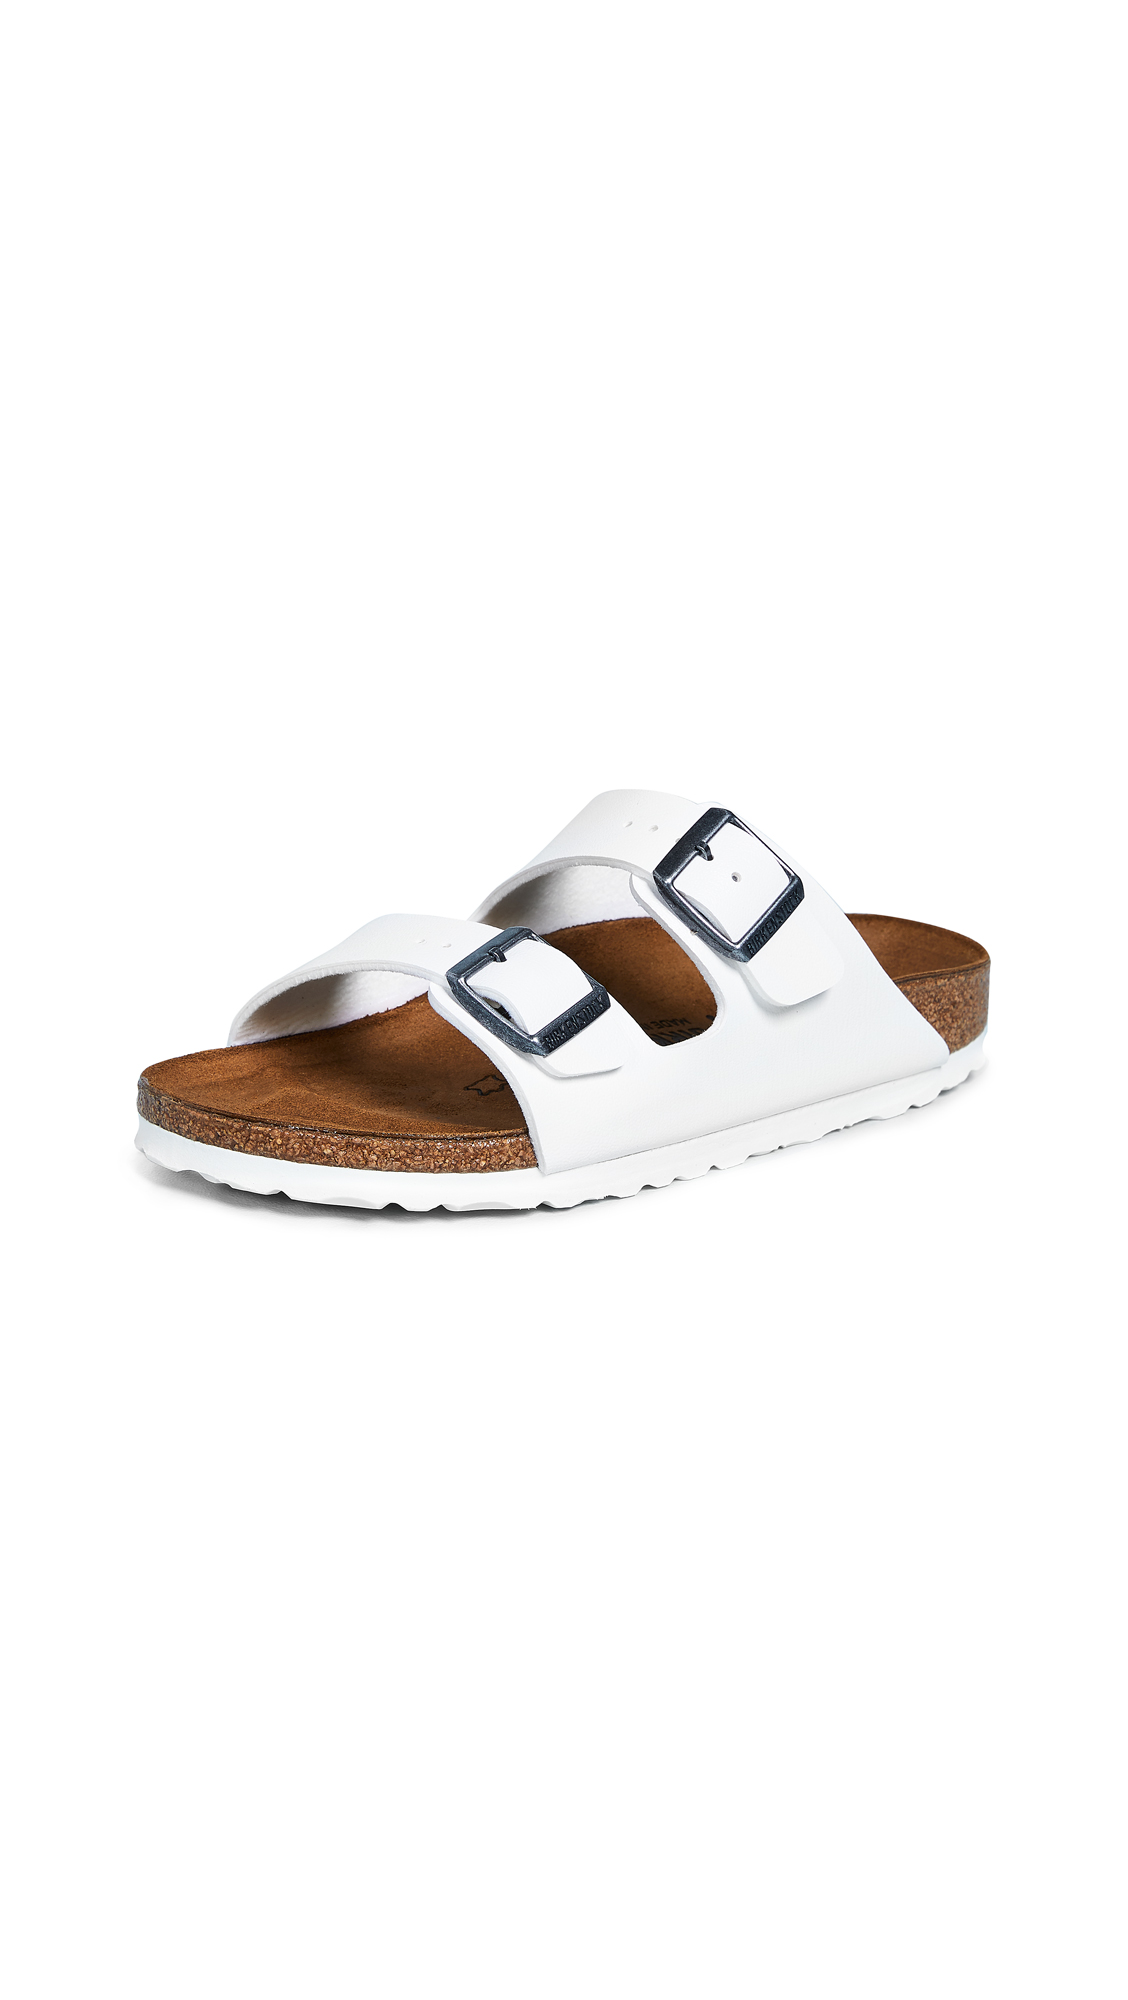 Birkenstock Arizona Sandals - White/White